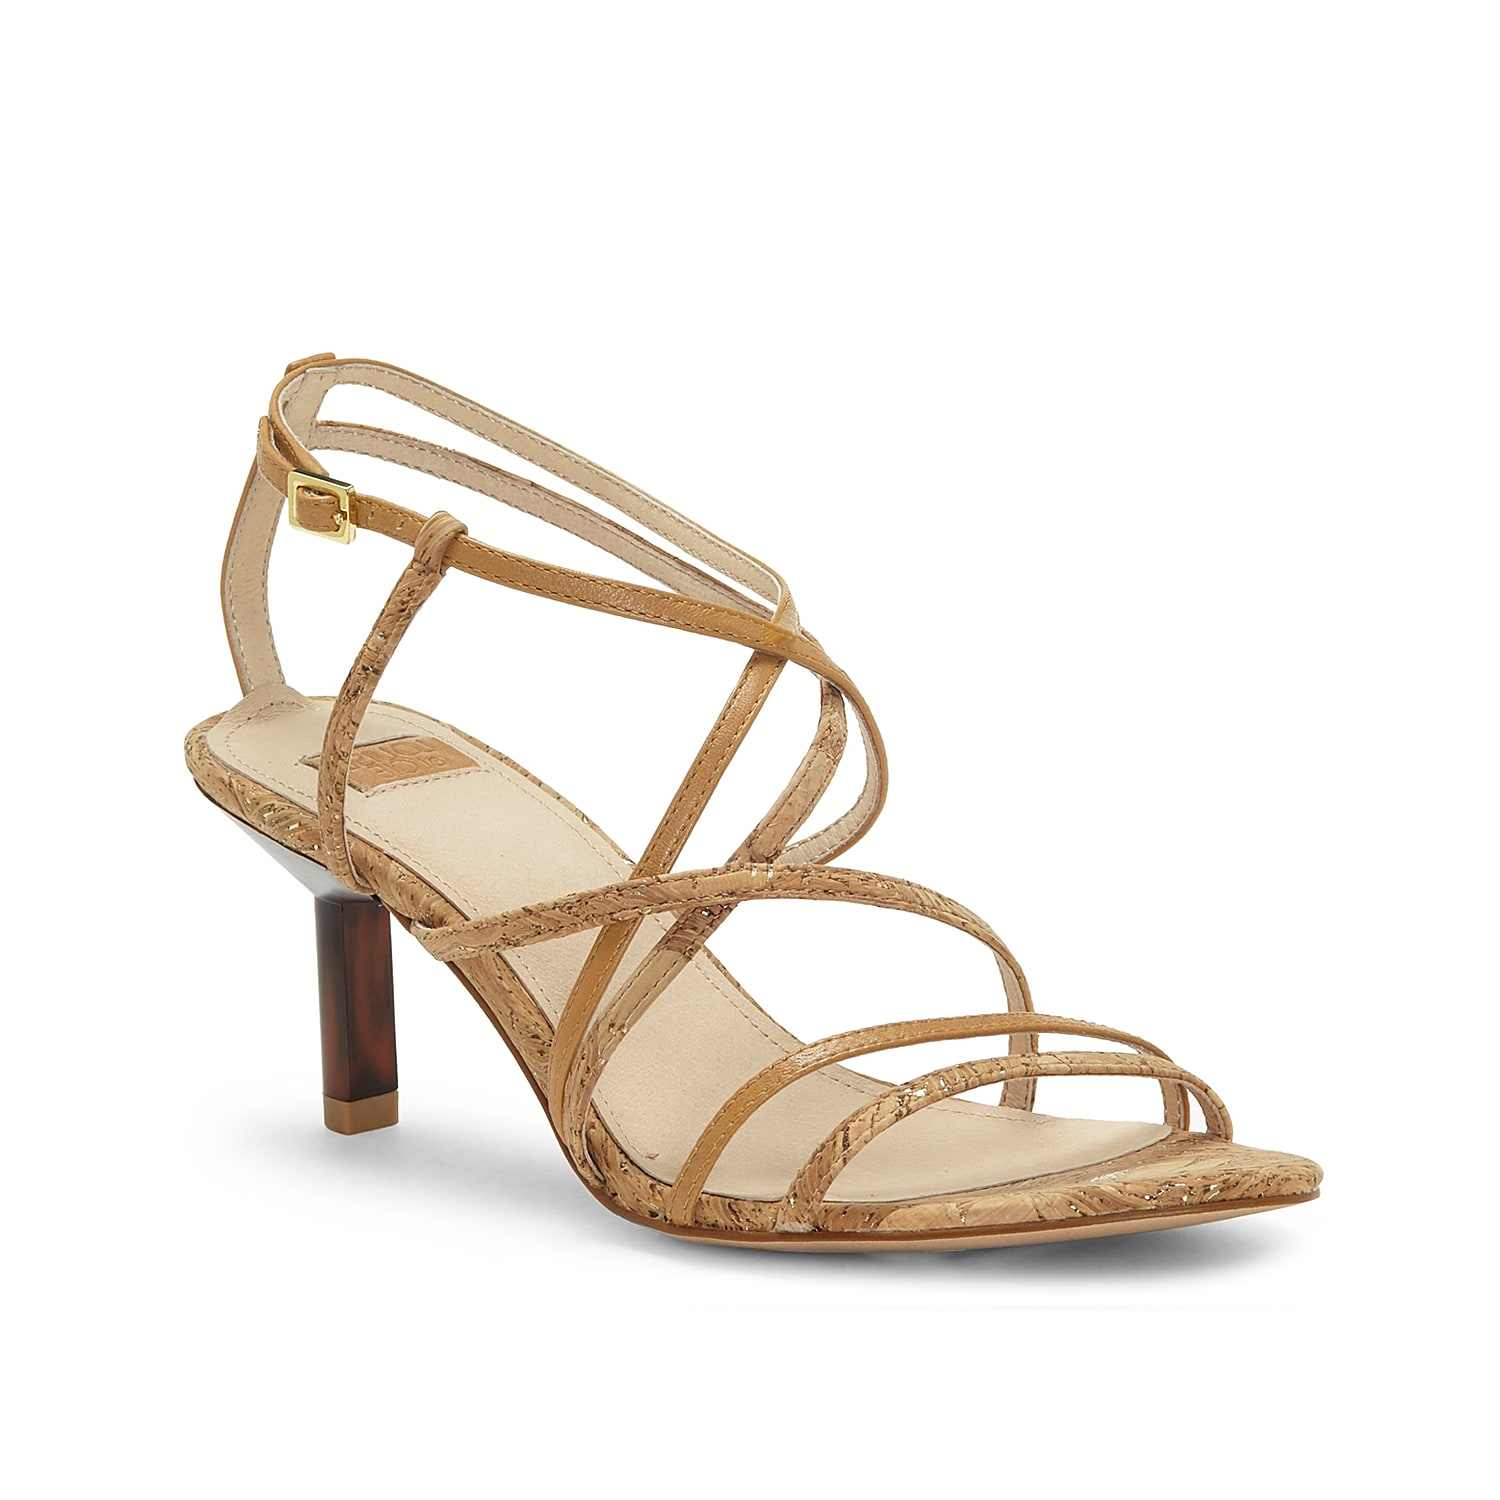 Minimalism meets modern fashion in the Hansel sandal from Louise Et Cie. The strappy upper and skinny heel define this dressy pair that\\\'s styled with a stamped footbed.